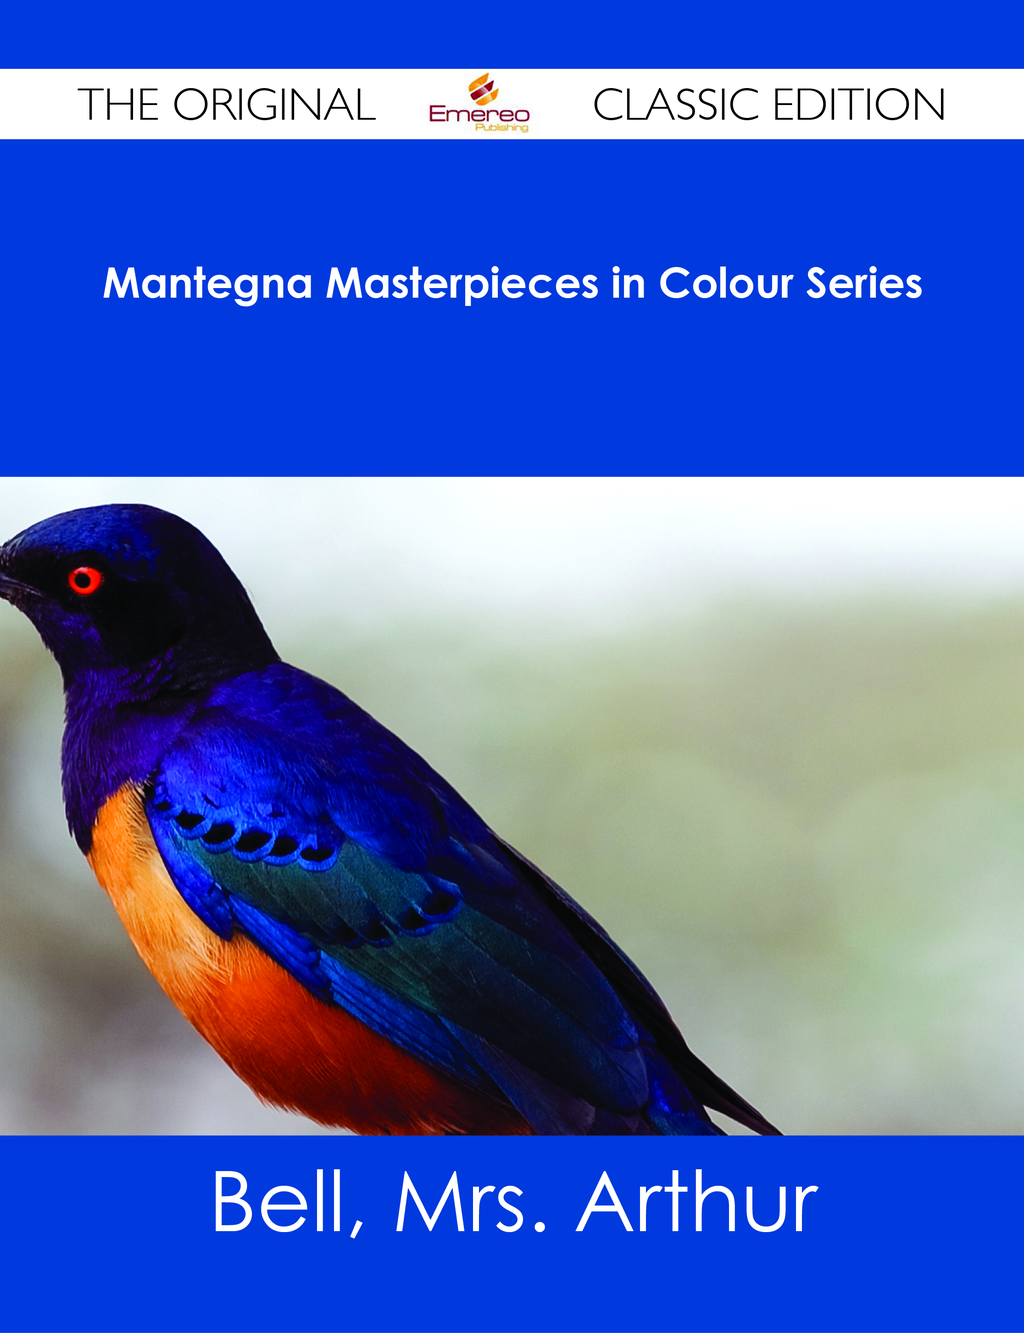 Mantegna Masterpieces in Colour Series - The Original Classic Edition